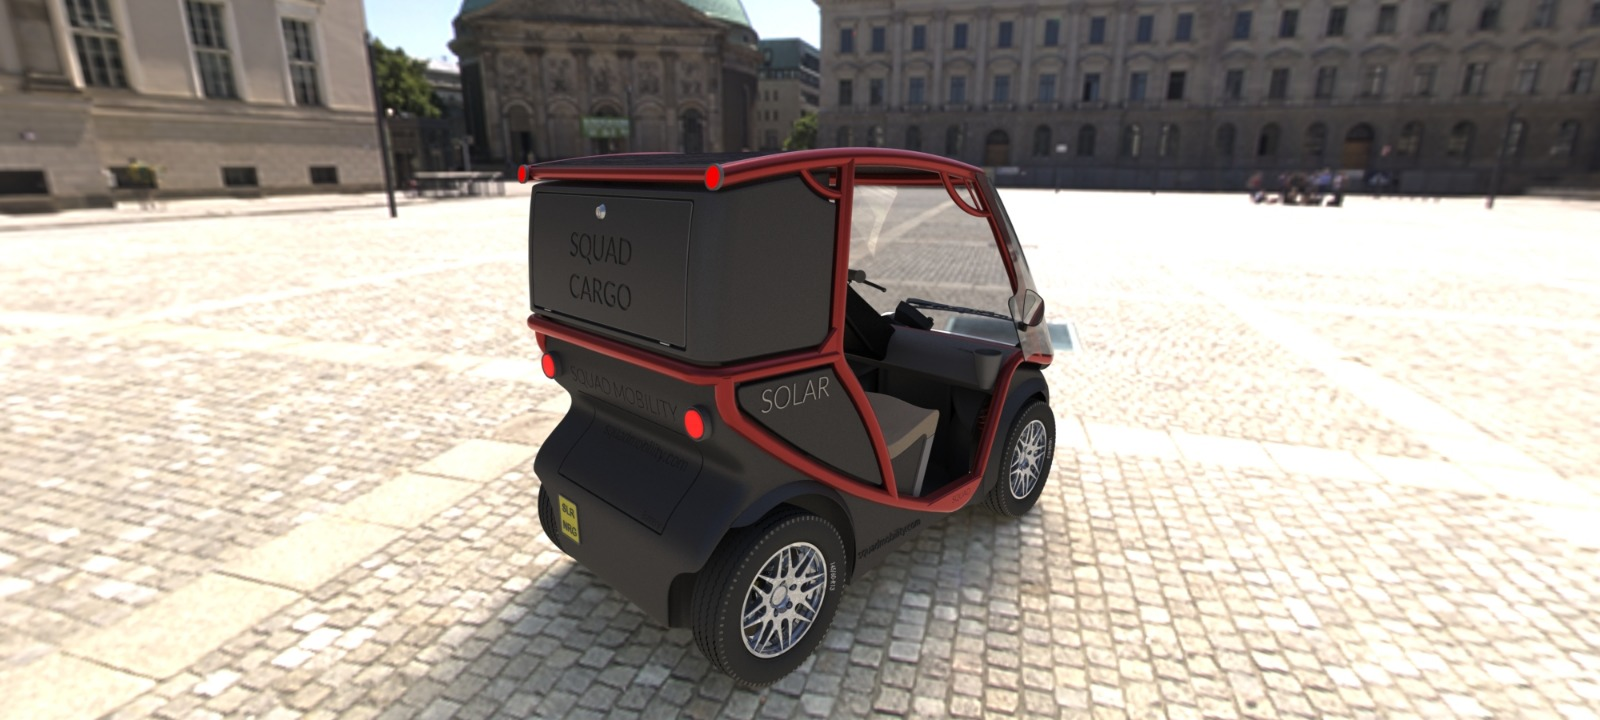 Squad Solar City Car Cargo Red Back